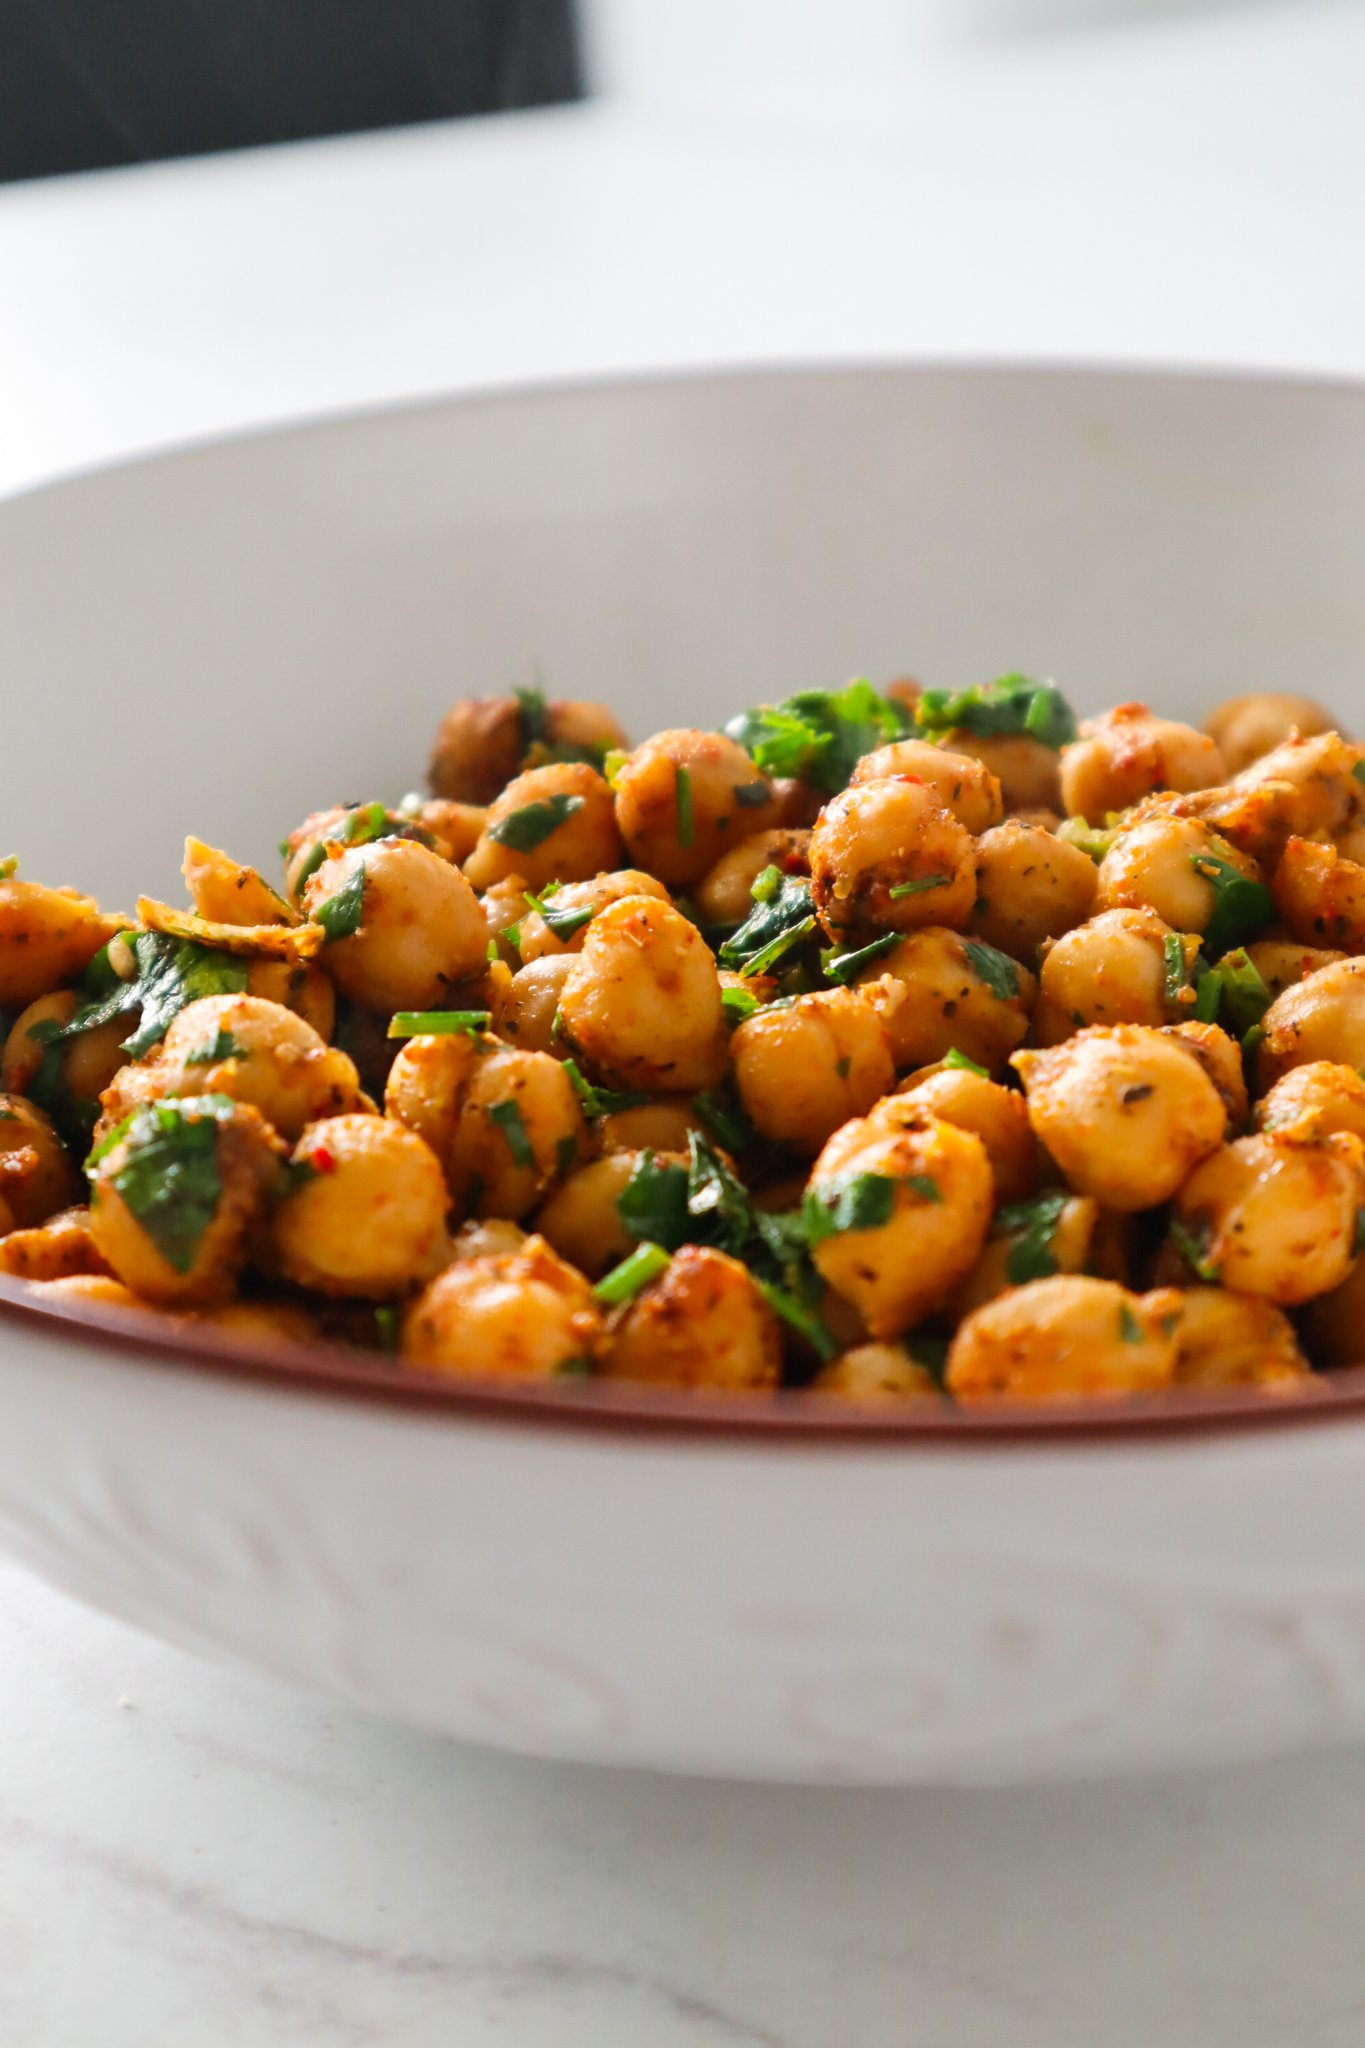 Spicy chickpeas! Ready in 5 minutes this easy chickpea recipe is made with canned chickpeas, is gluten free vegan and will be great for weekly vegan meal prep!